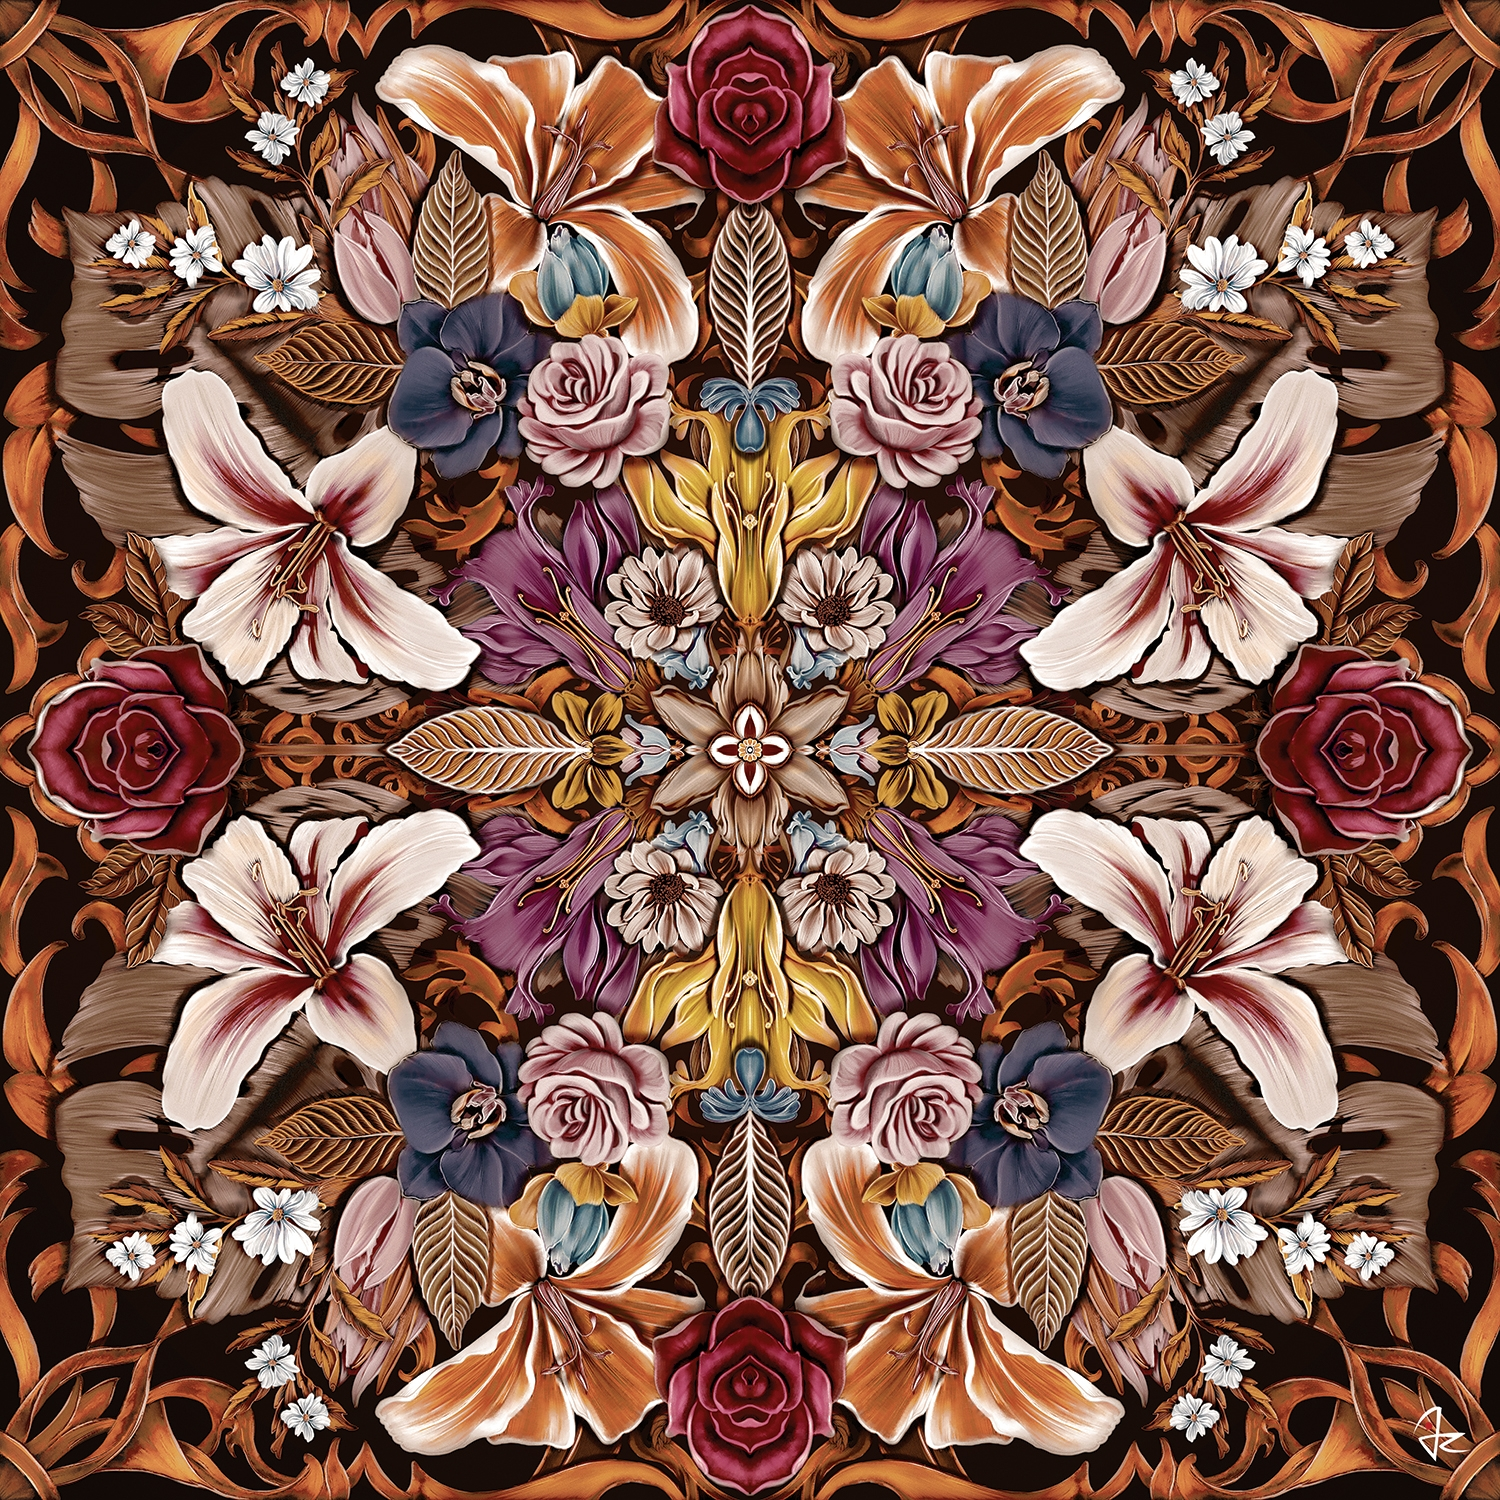 a kaleidoscope print full of flowers in gold, purple, pink, and maroon